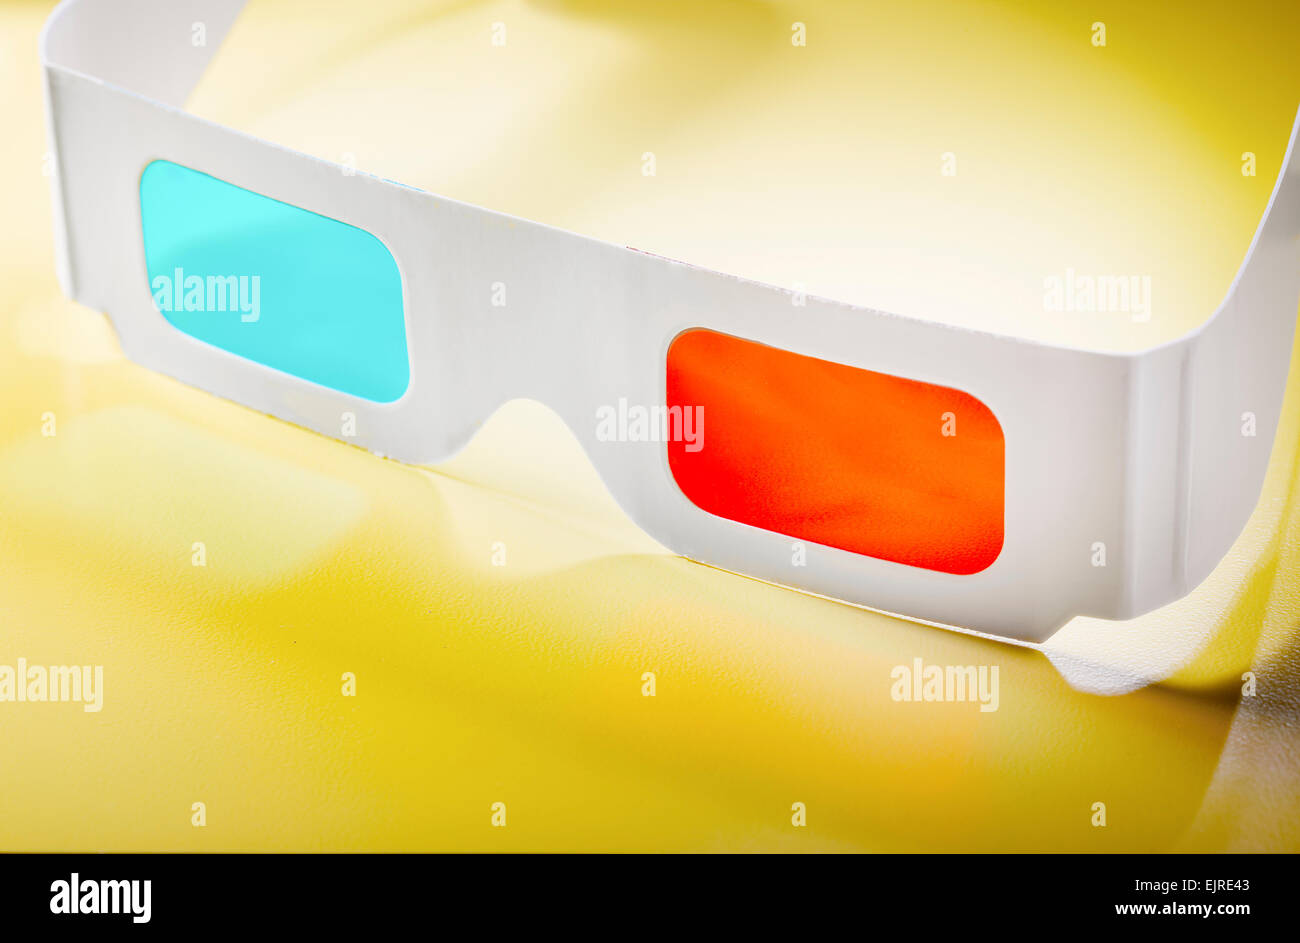 Disposable cardboard 3D Anaglyph glasses with cyan/red lenses. - Stock Image